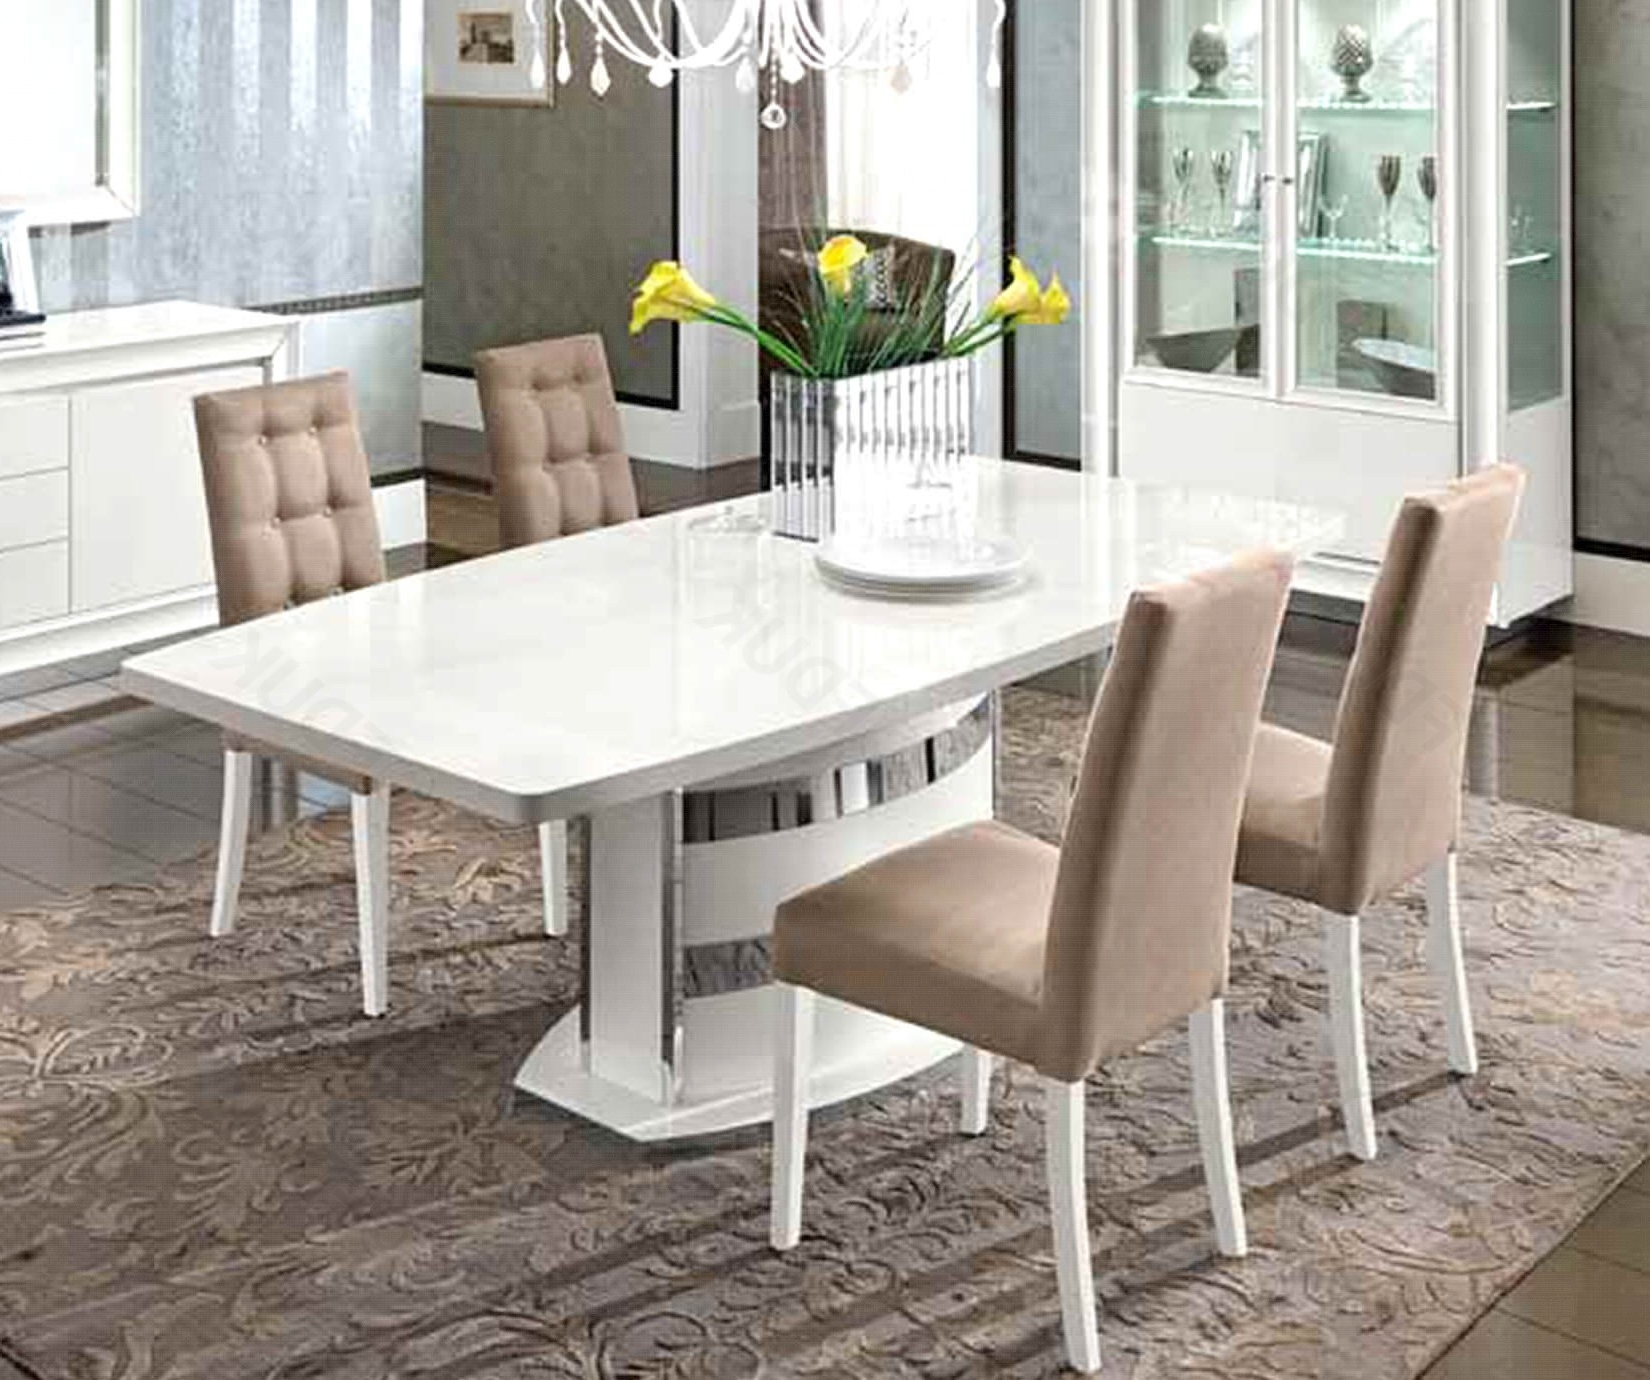 Most Recent White Gloss Extendable Dining Tables Throughout The 26 New White High Gloss Extending Dining Table – Welovedandelion (Gallery 14 of 25)